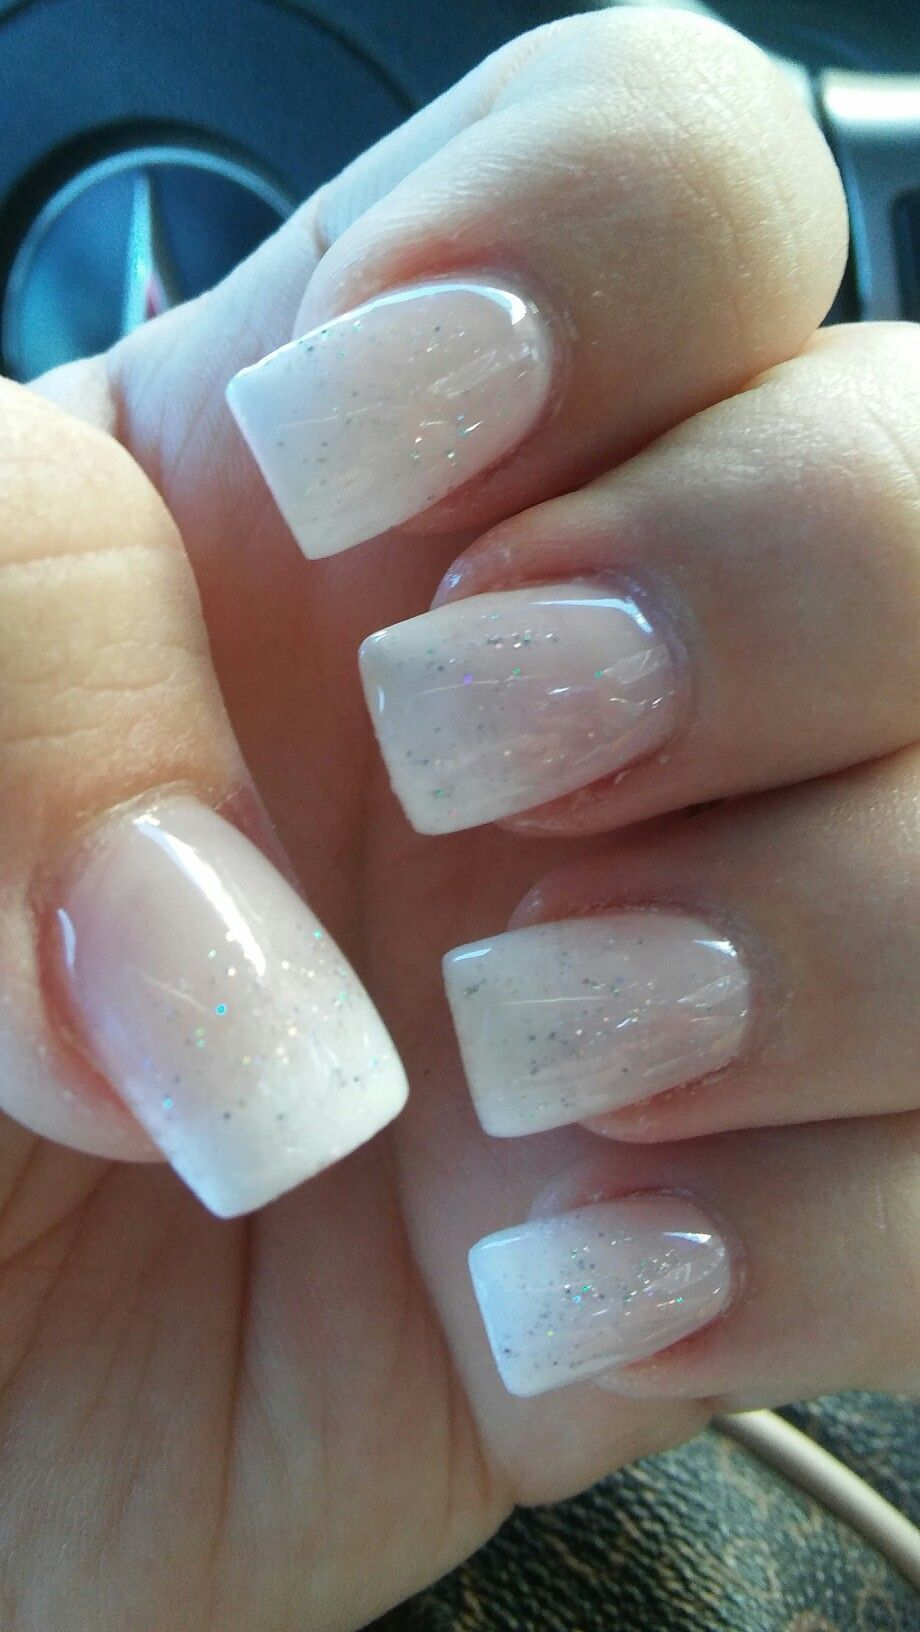 Short And Square Glitter Ombre White Tips Natural Looking Finally No Tips Natural Na Ombre Nails Glitter Short Square Acrylic Nails White Glitter Nails